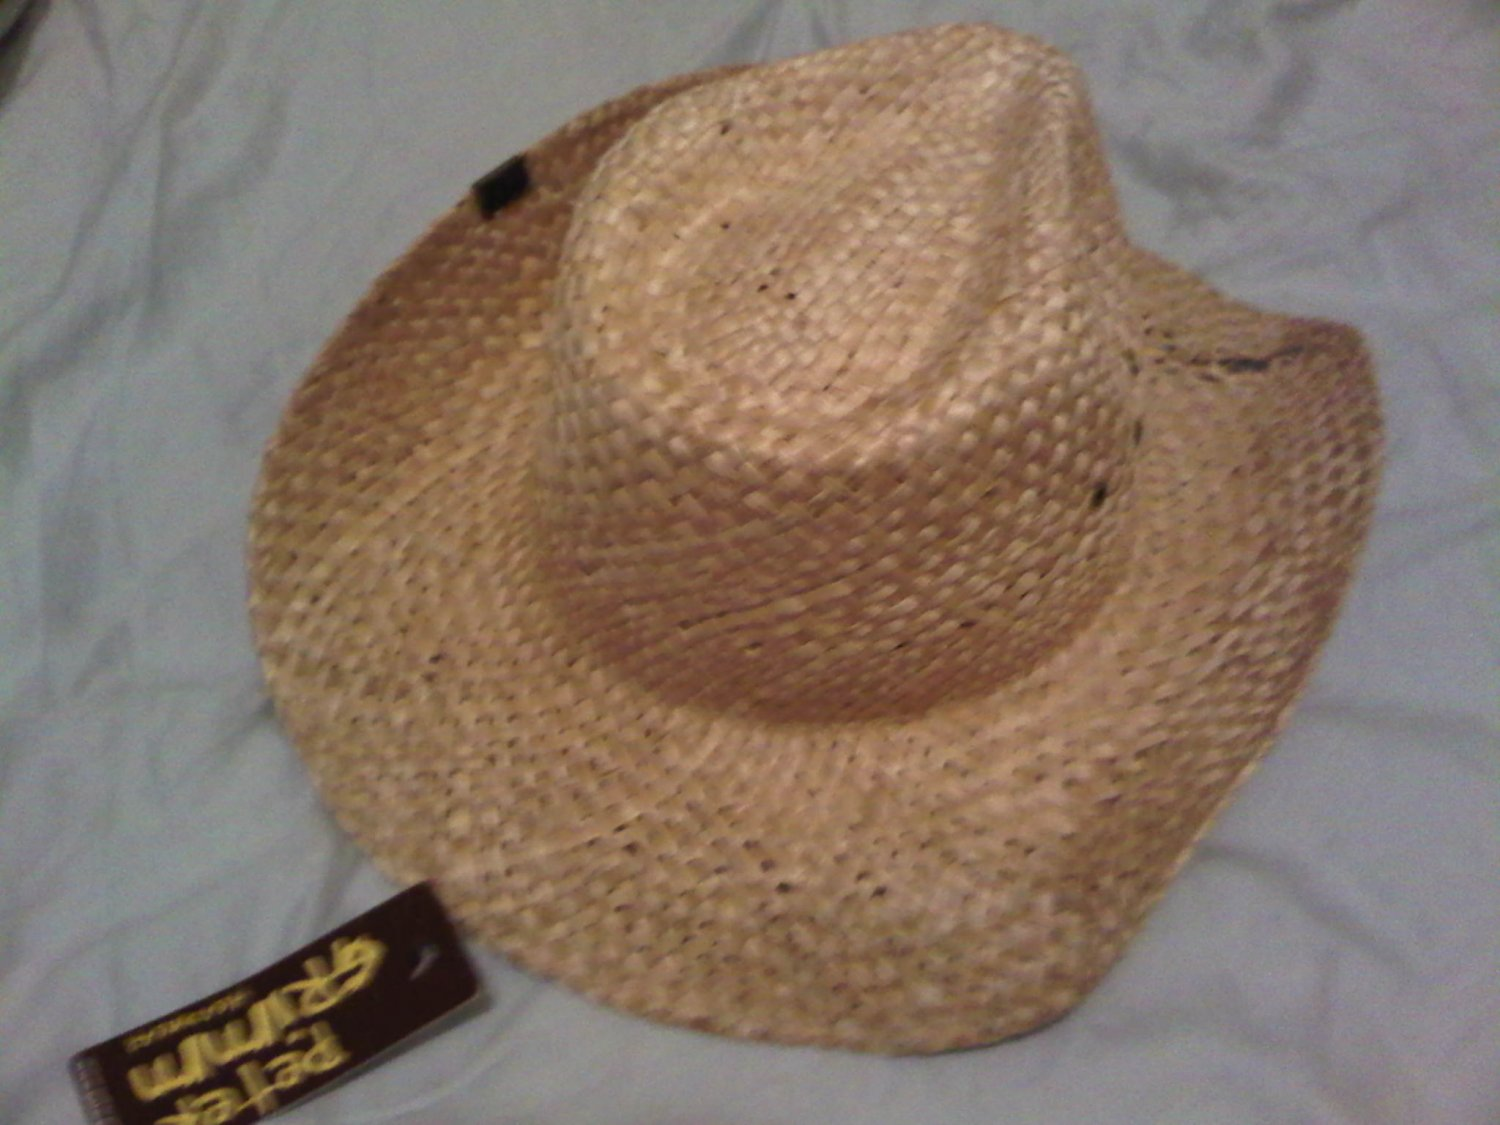 PETER GRIMM STRAW HAT QUALITY FARMER COWBOY GARDEN HORSE WOMEN'S MEN'S ACCESSORY CLOTHING CLOTHES